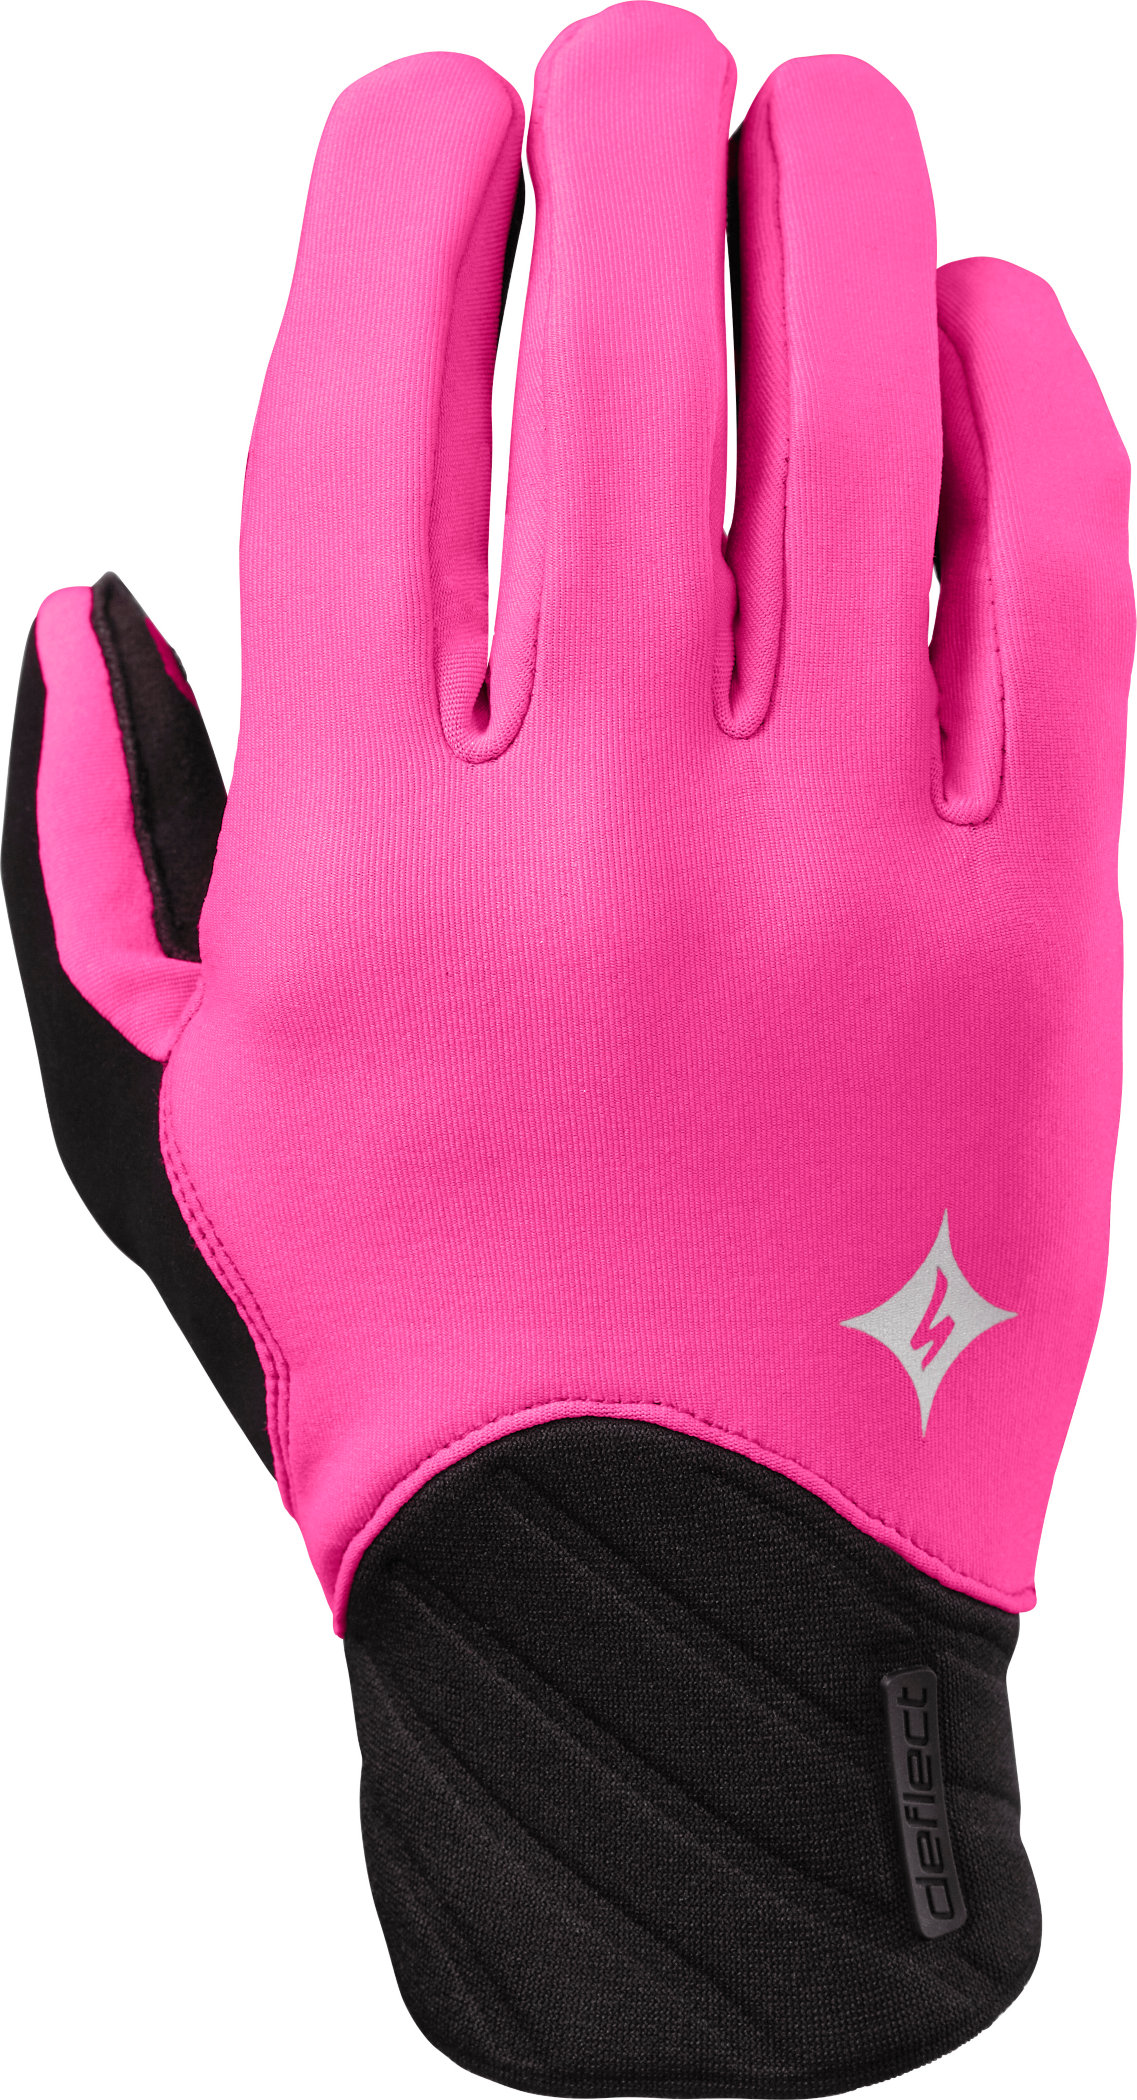 SPECIALIZED DEFLECT GLOVE LF WMN NEON PNK L - Bikedreams & Dustbikes